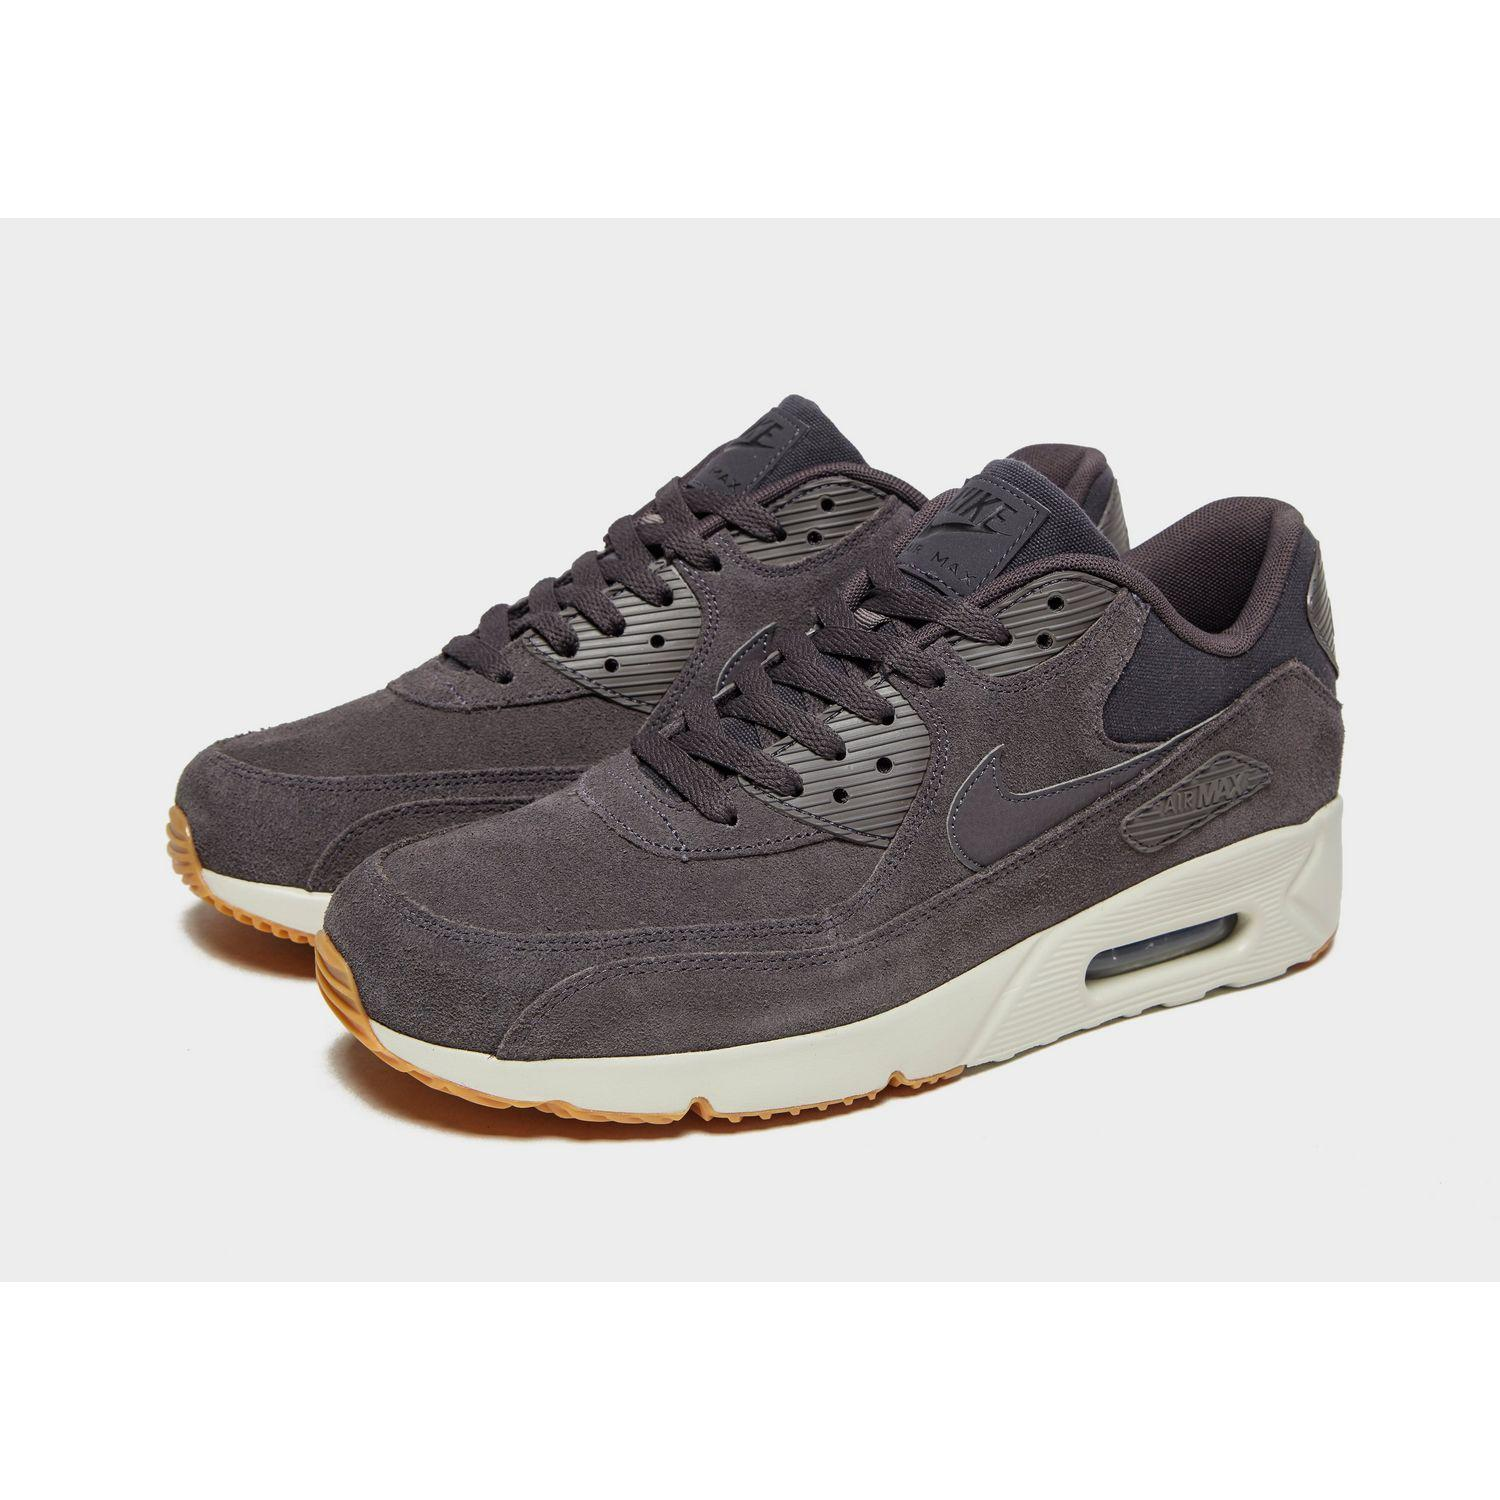 Nike Air Max 90 Ultra Suede in Grey/White (Gray) for Men - Lyst